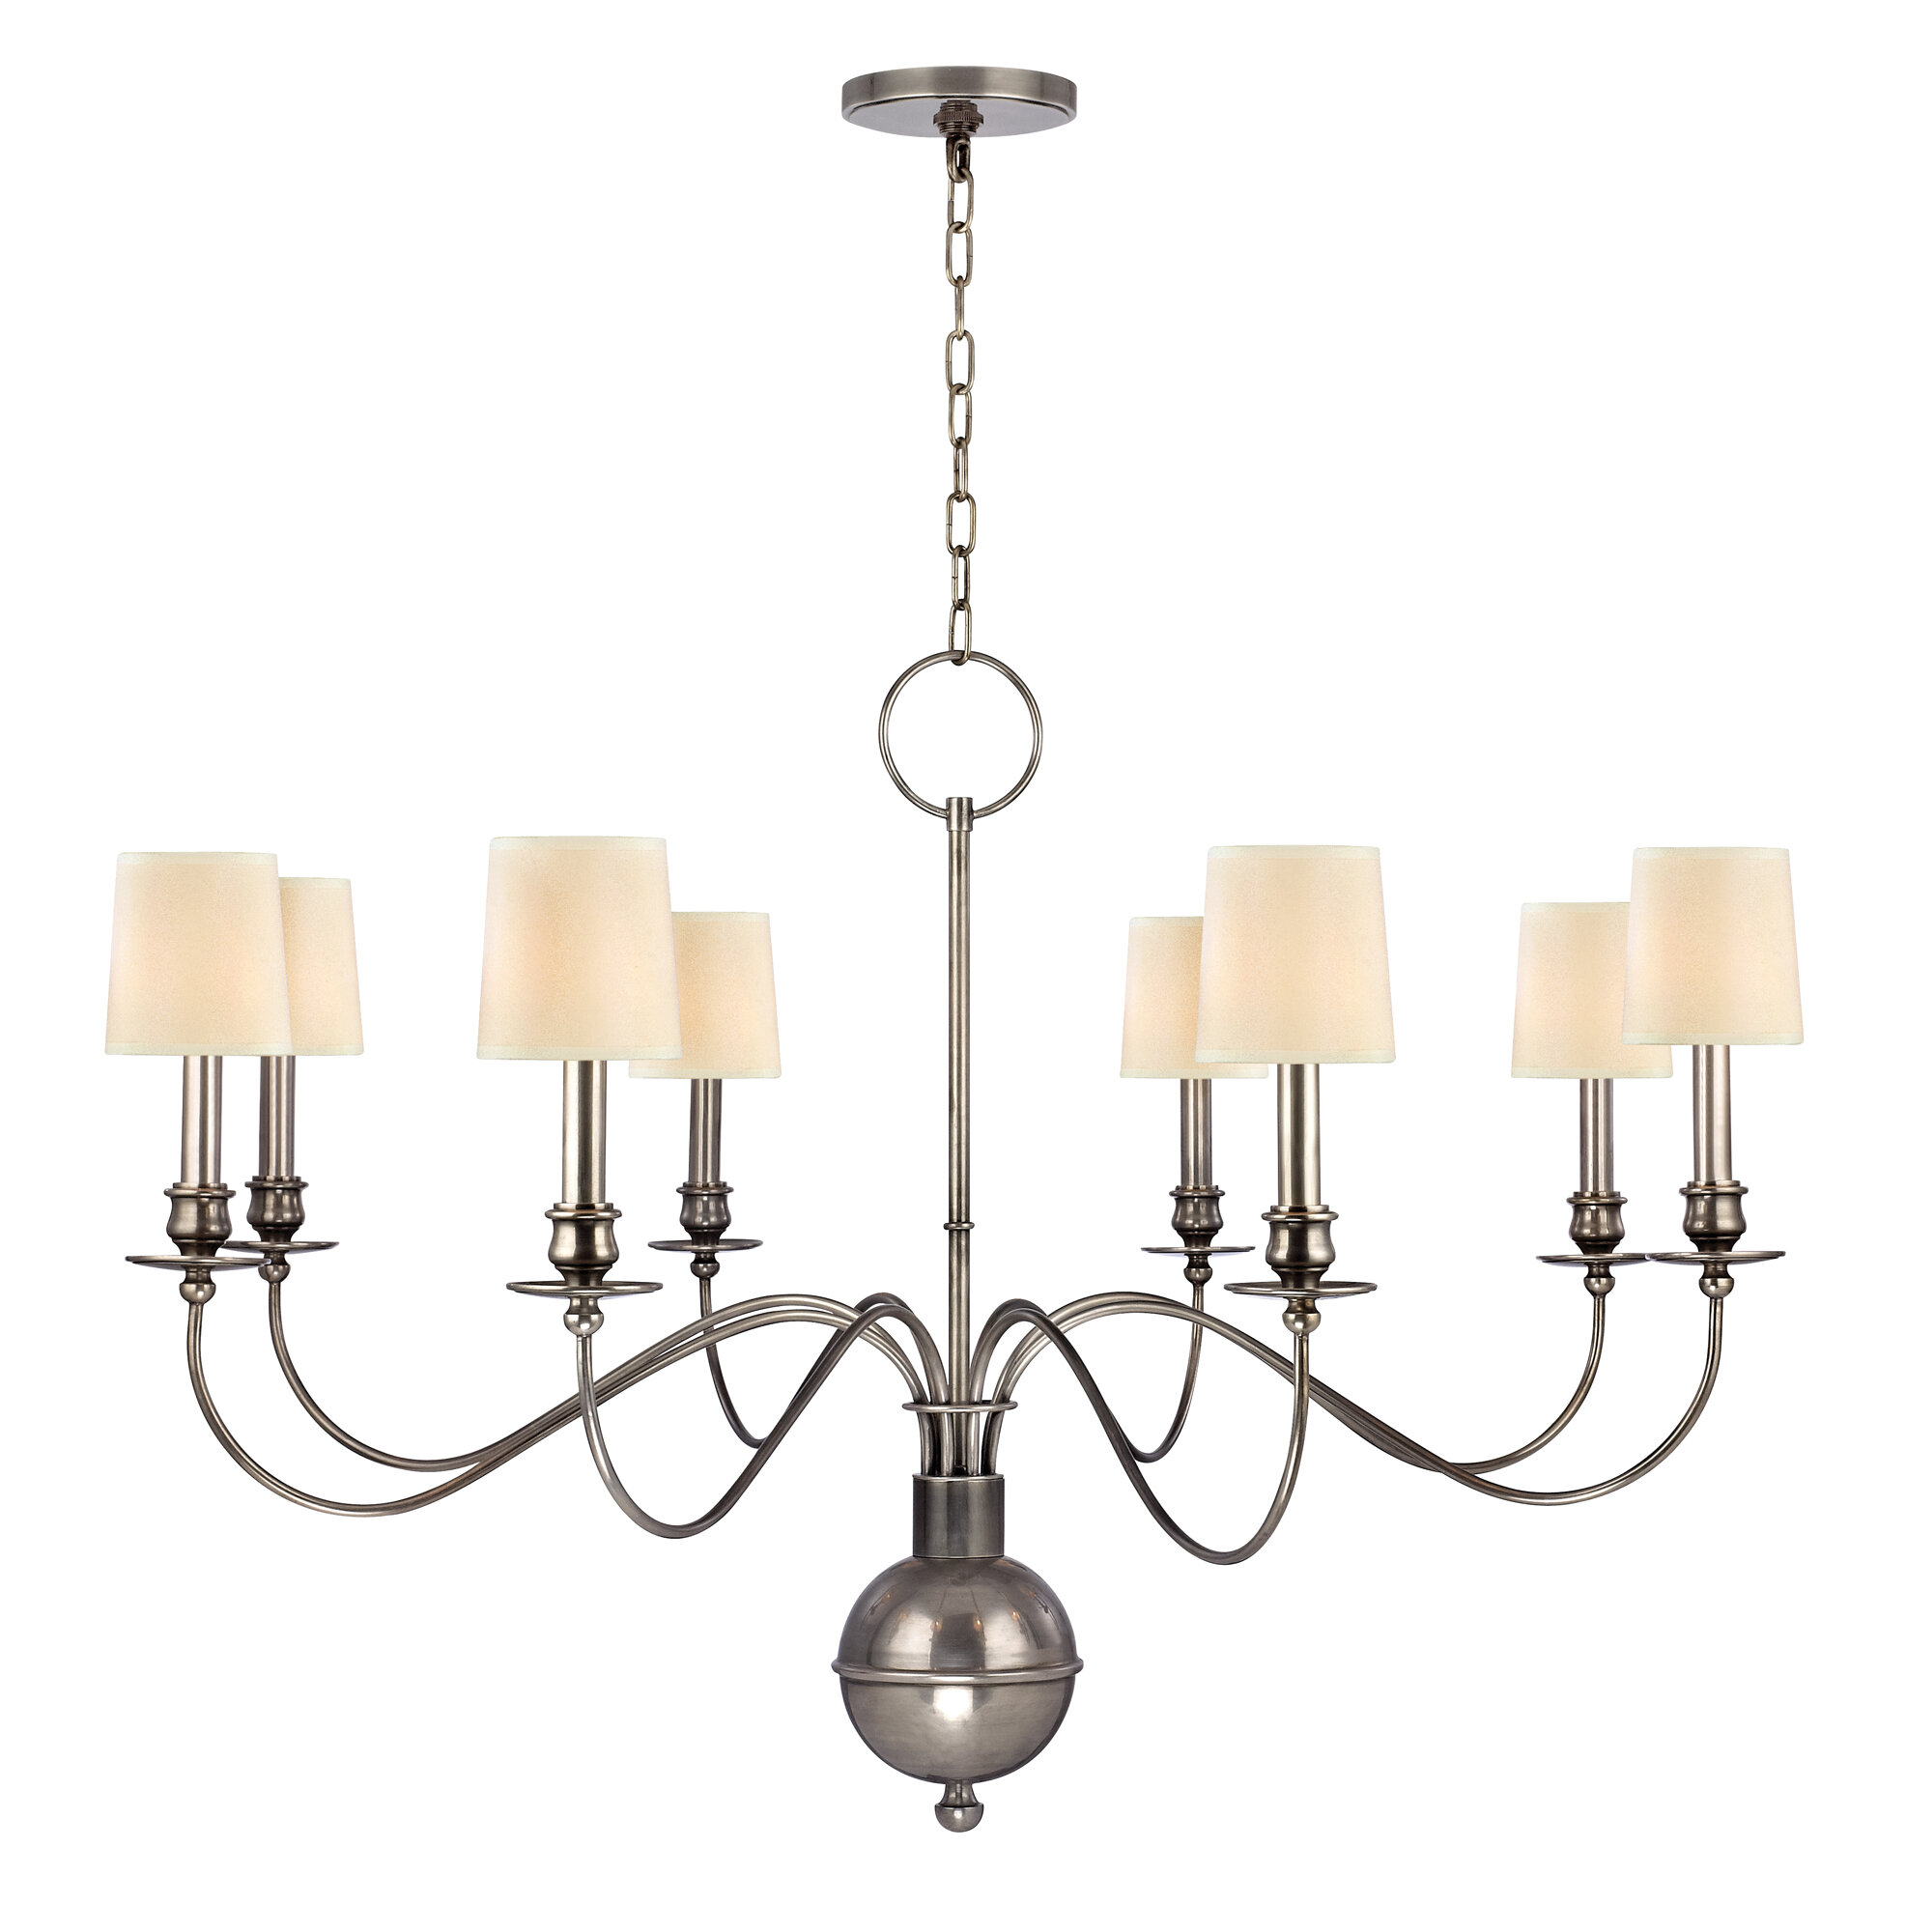 Darby Home Co Erby 8 Light Shaded Classic Traditional Chandelier Wayfair